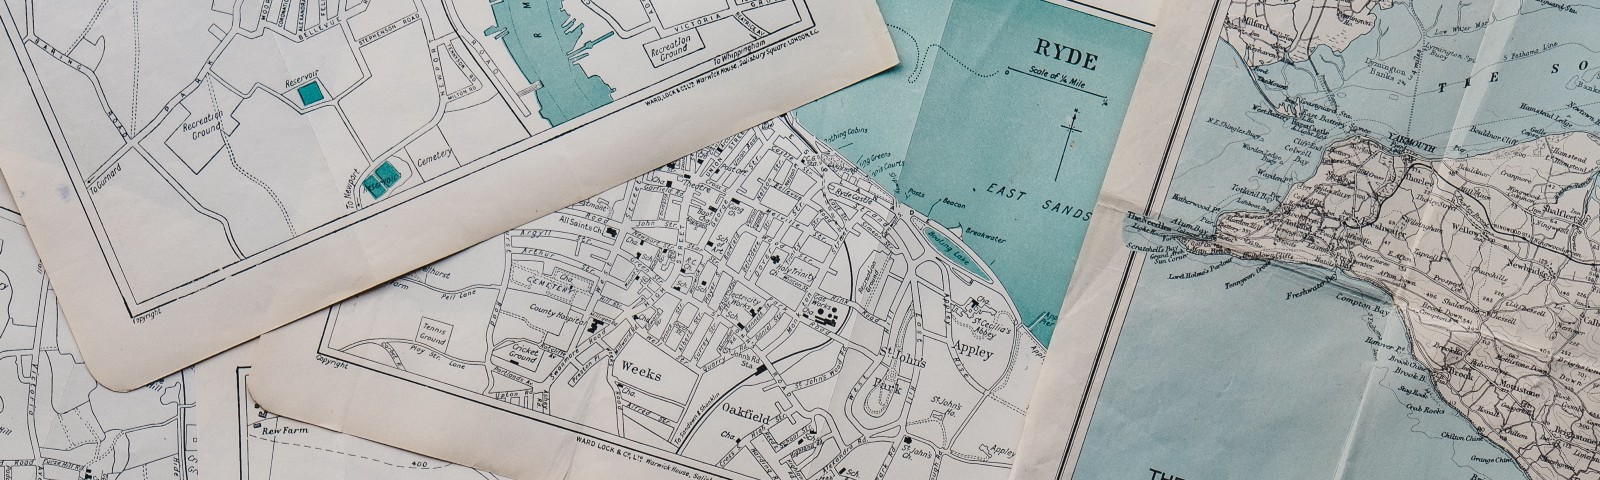 A bunch of maps meant to convey the idea of planinng